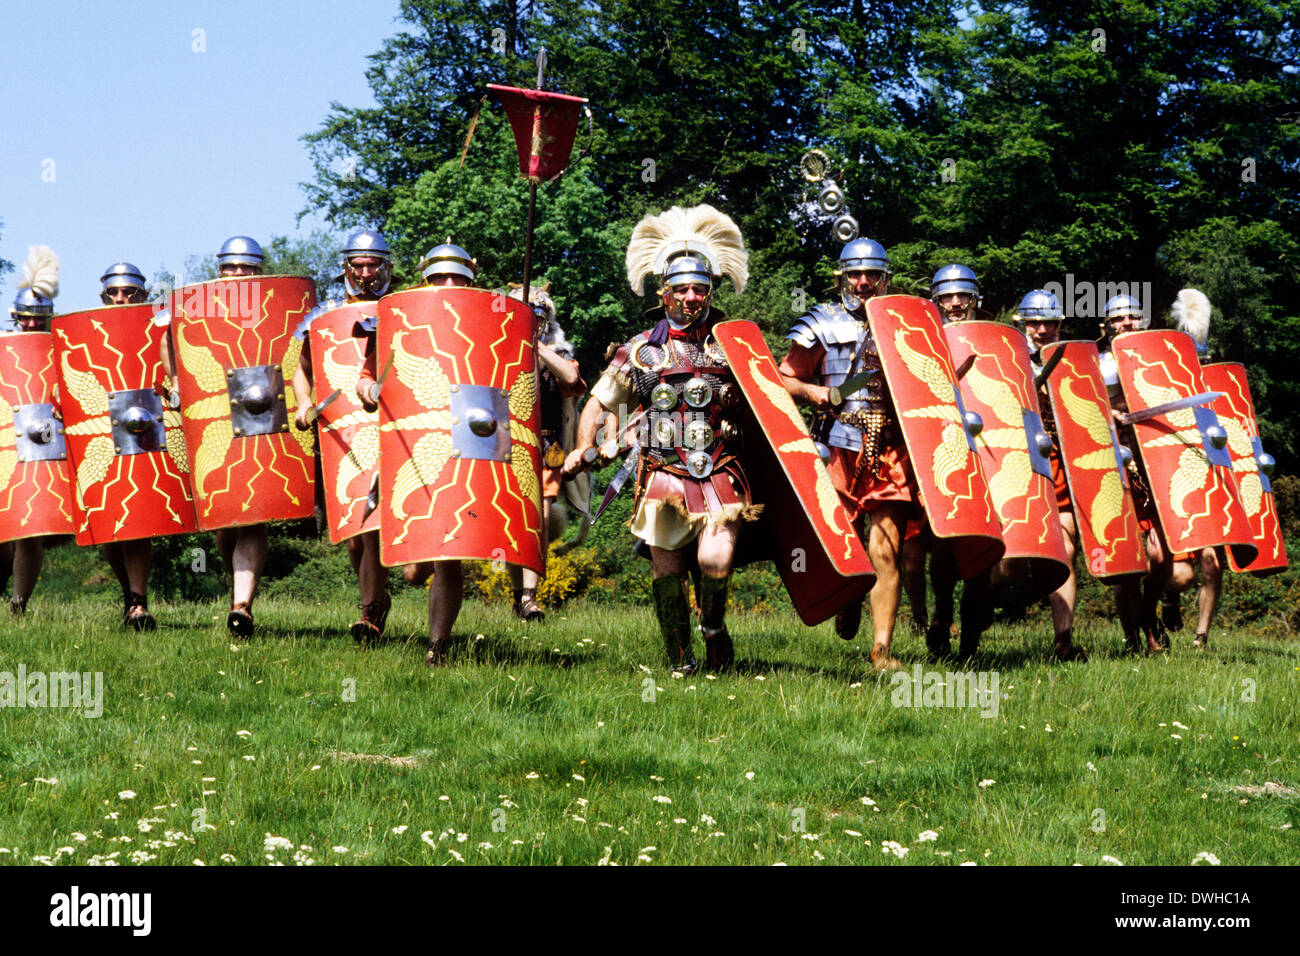 Historical re-enactment, Roman legionary soldiers soldier military cohort attacking, 1st century Army in Britain legion legions armour shields weapons England UK - Stock Image